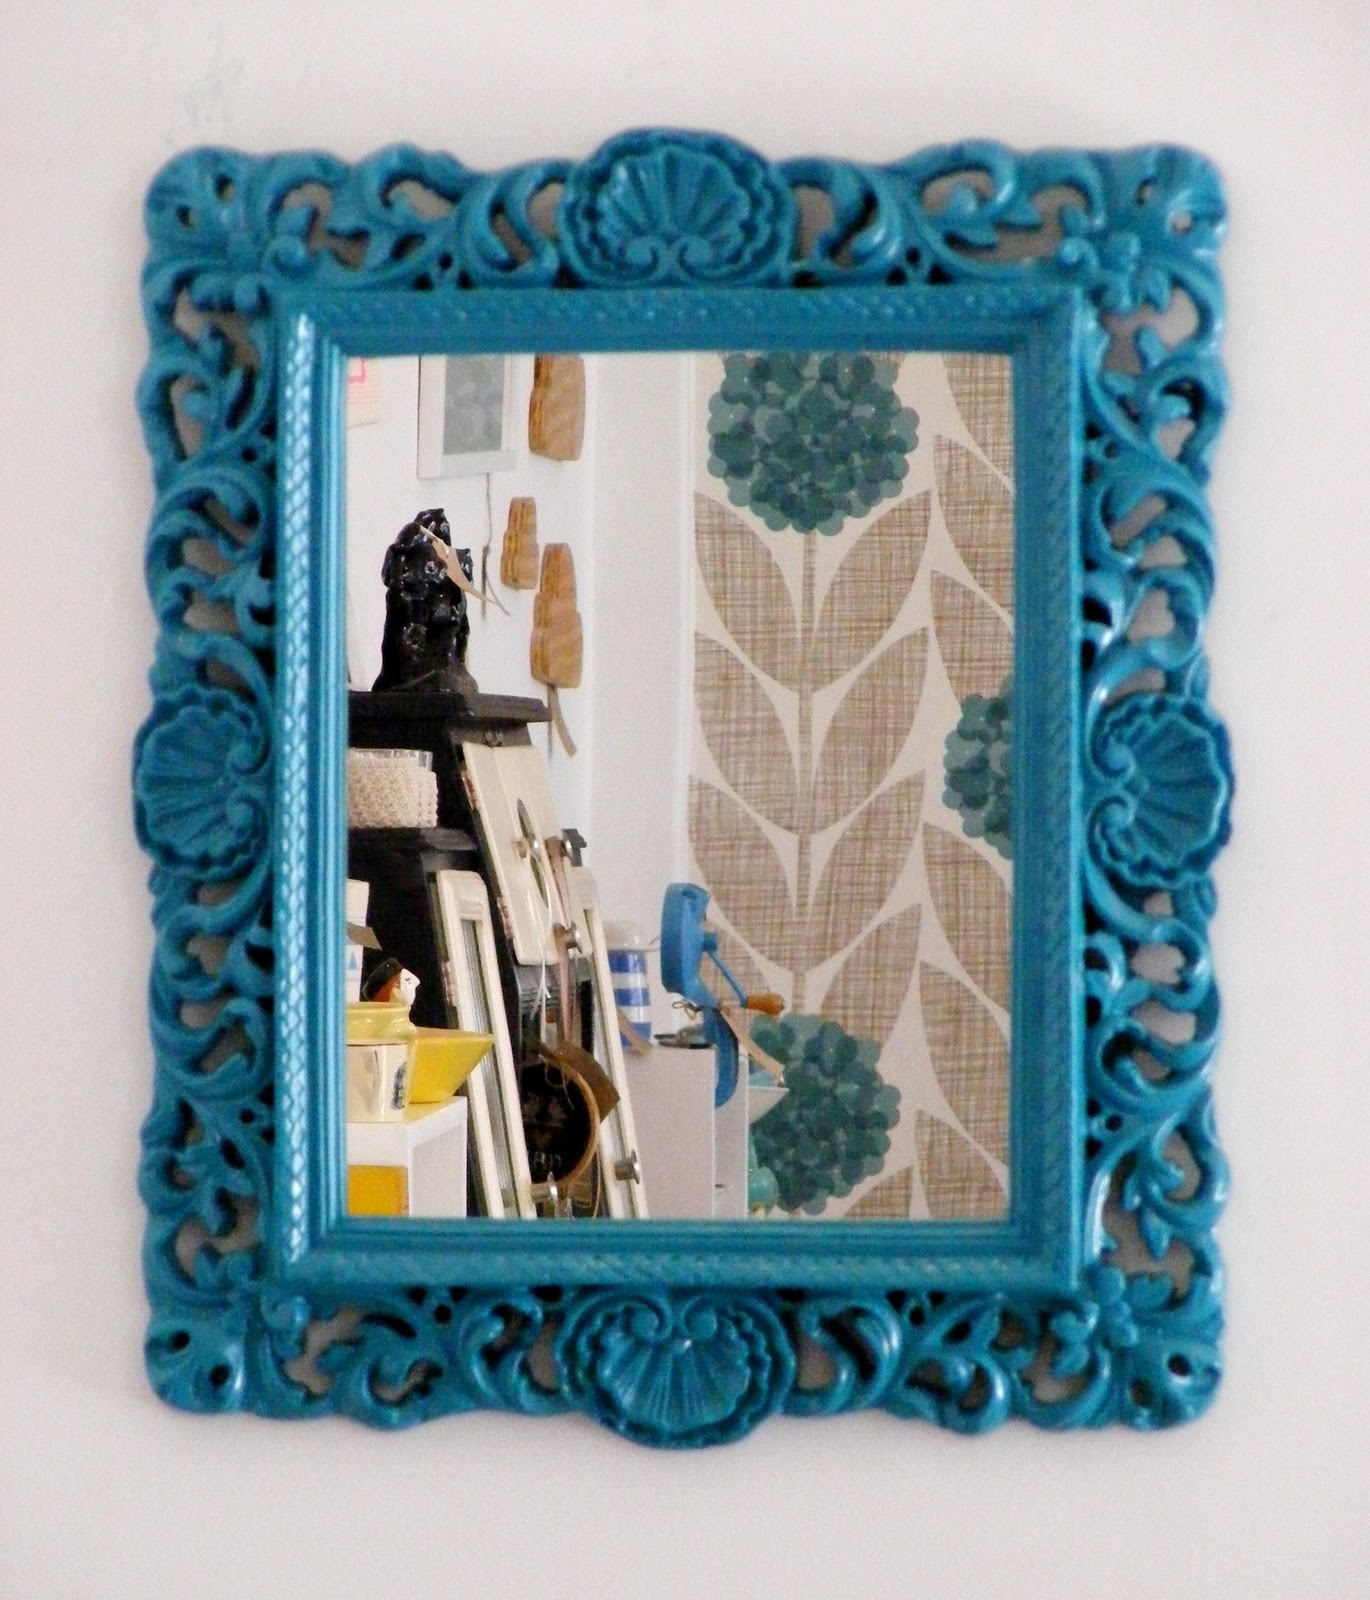 Vamp furniture this weeks new furniture stock at vamp for Teal framed mirror